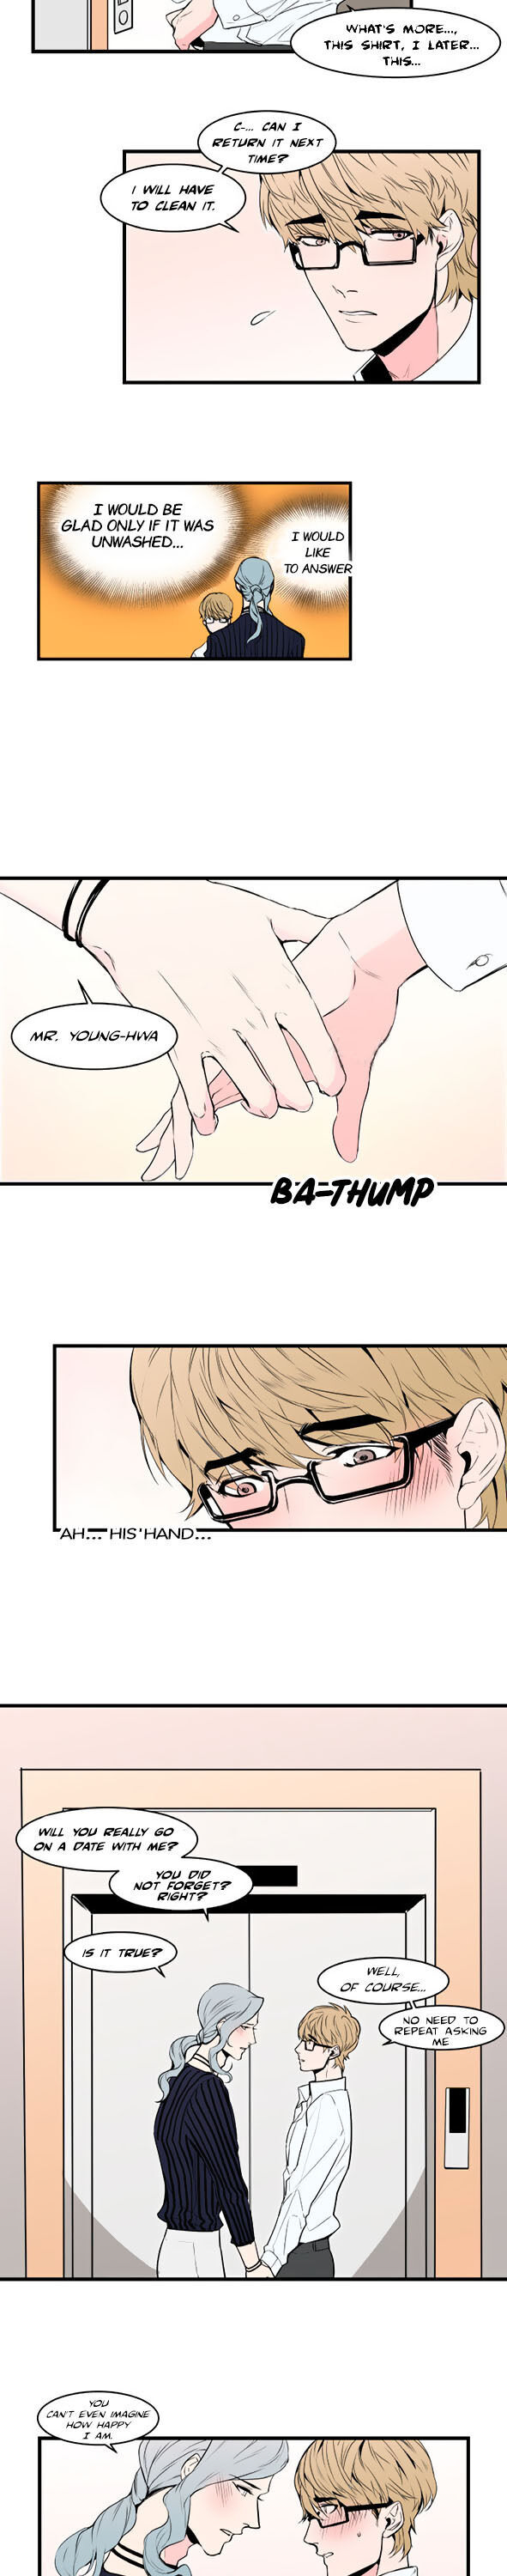 Big And Beautiful - chapter 19 - #3